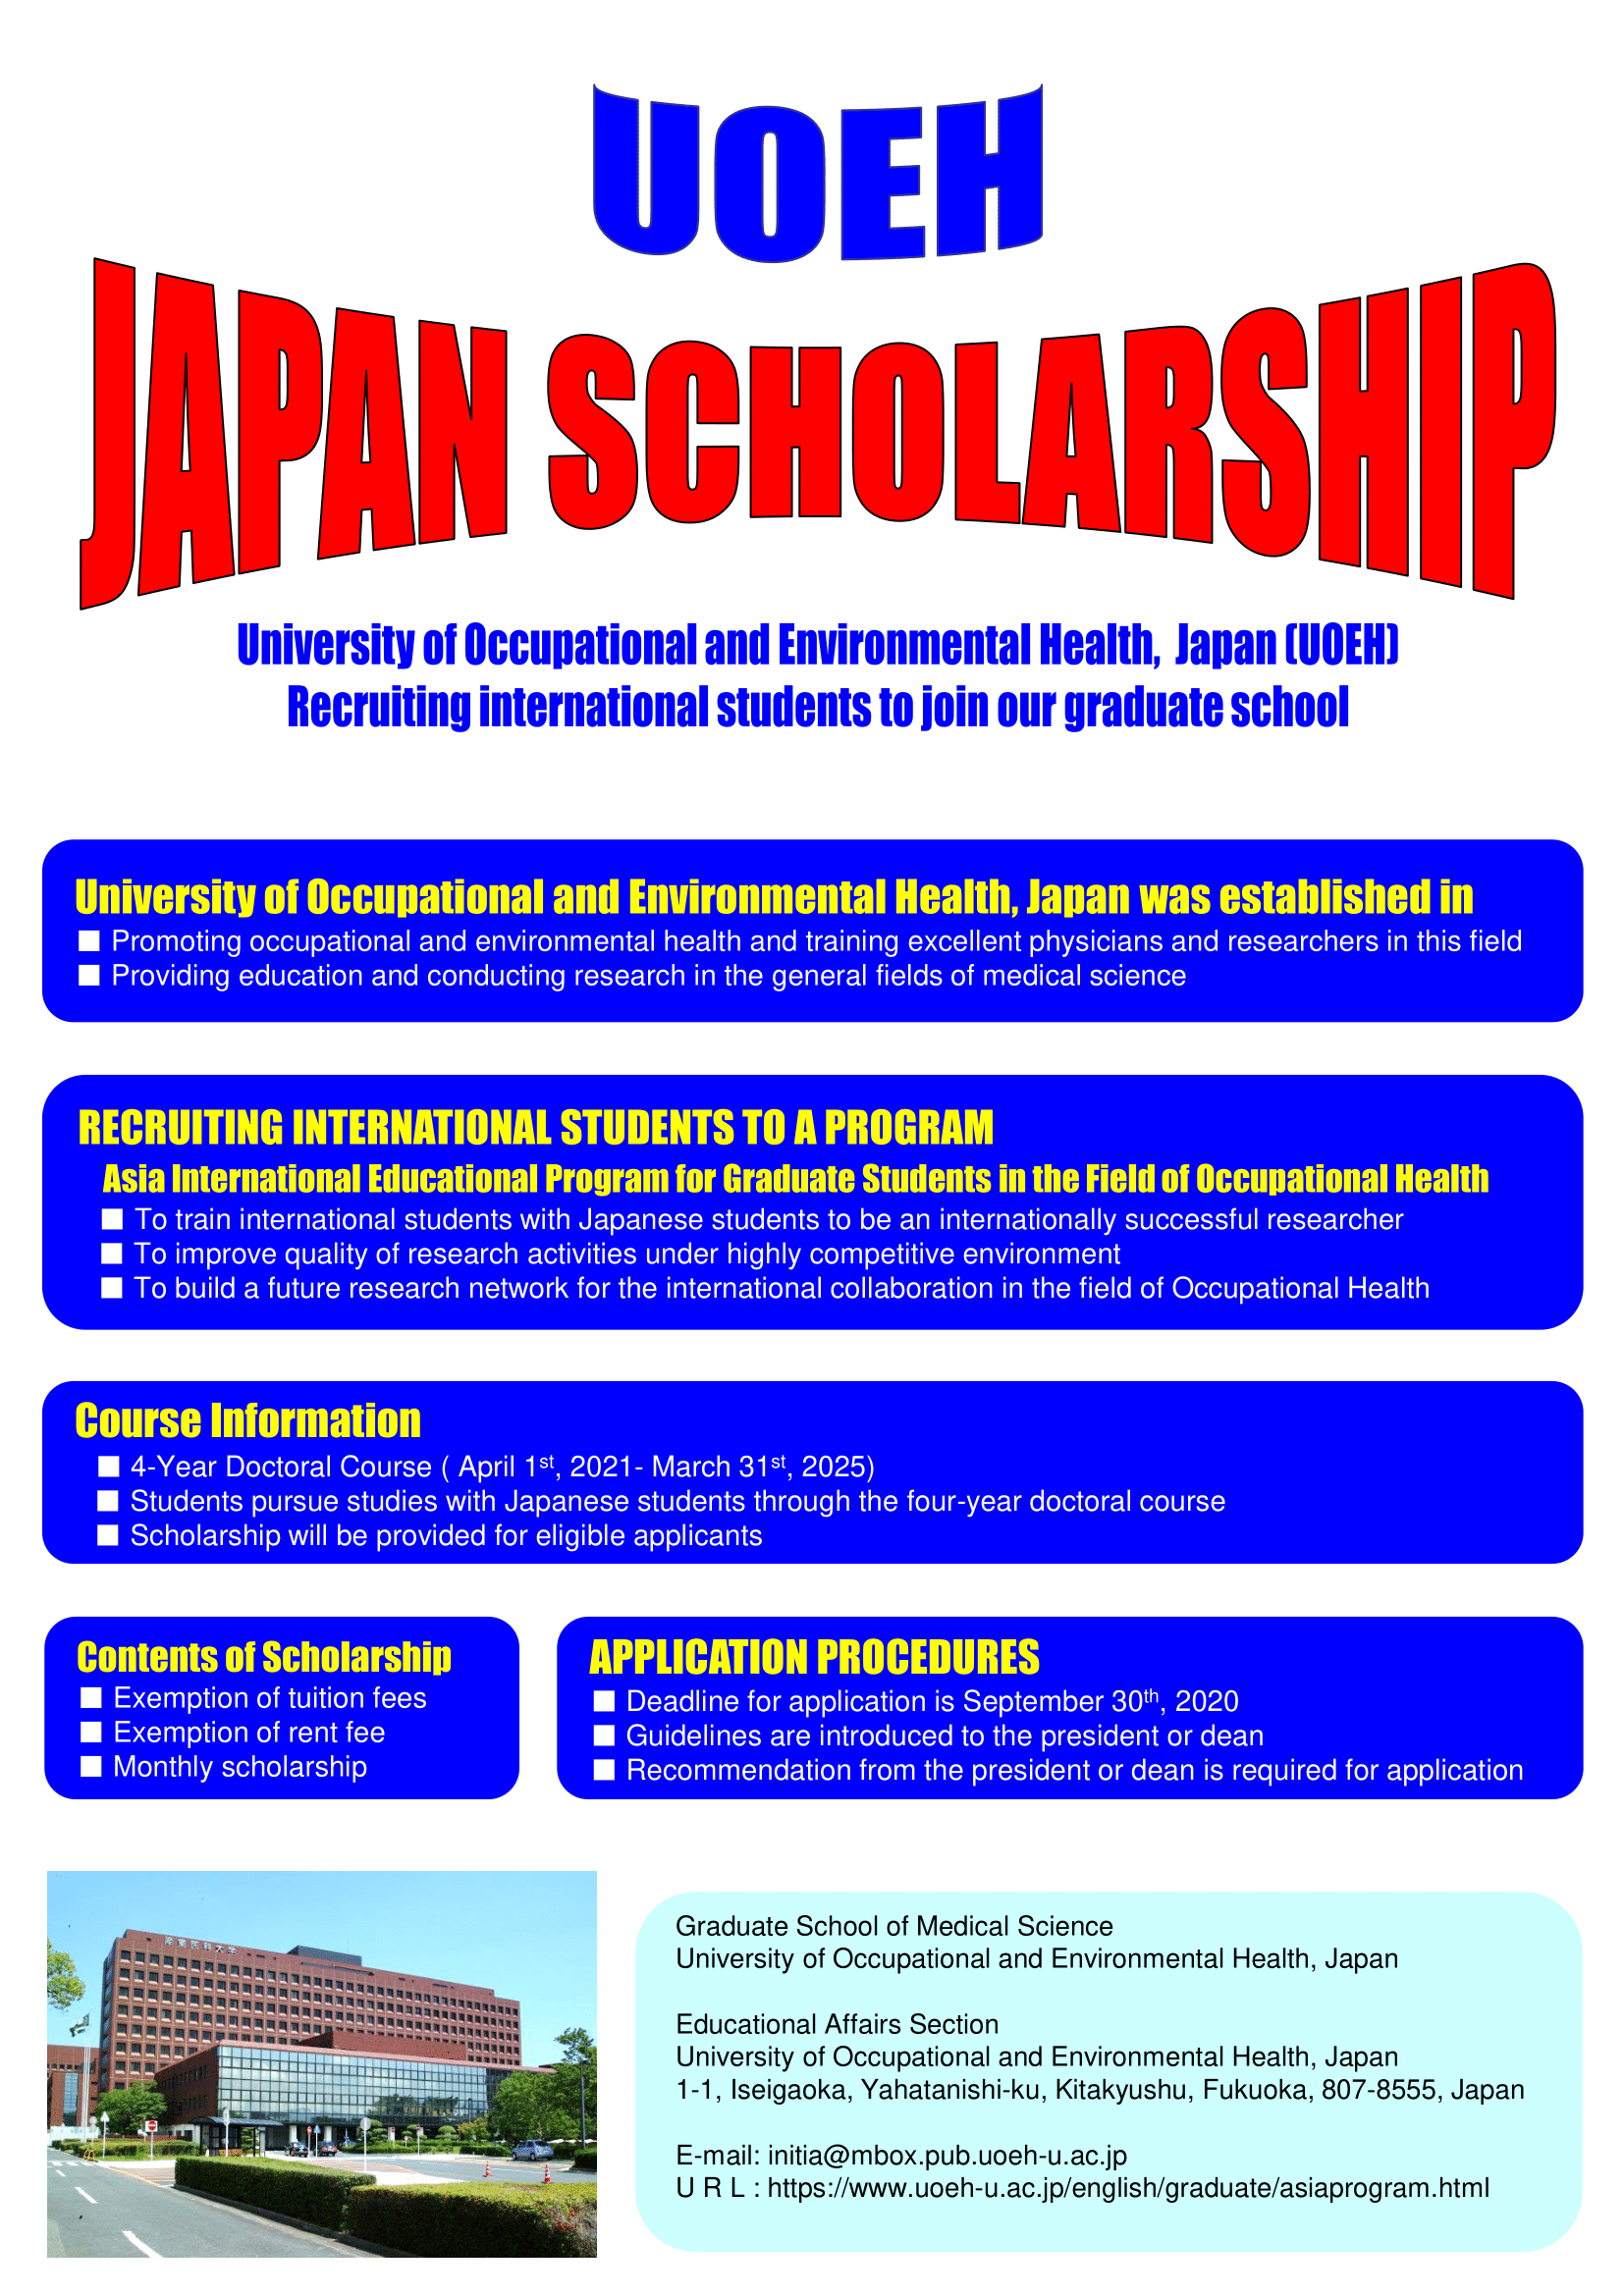 Asia International Educational Program for Graduate Students in the field of Occupational Health 2021